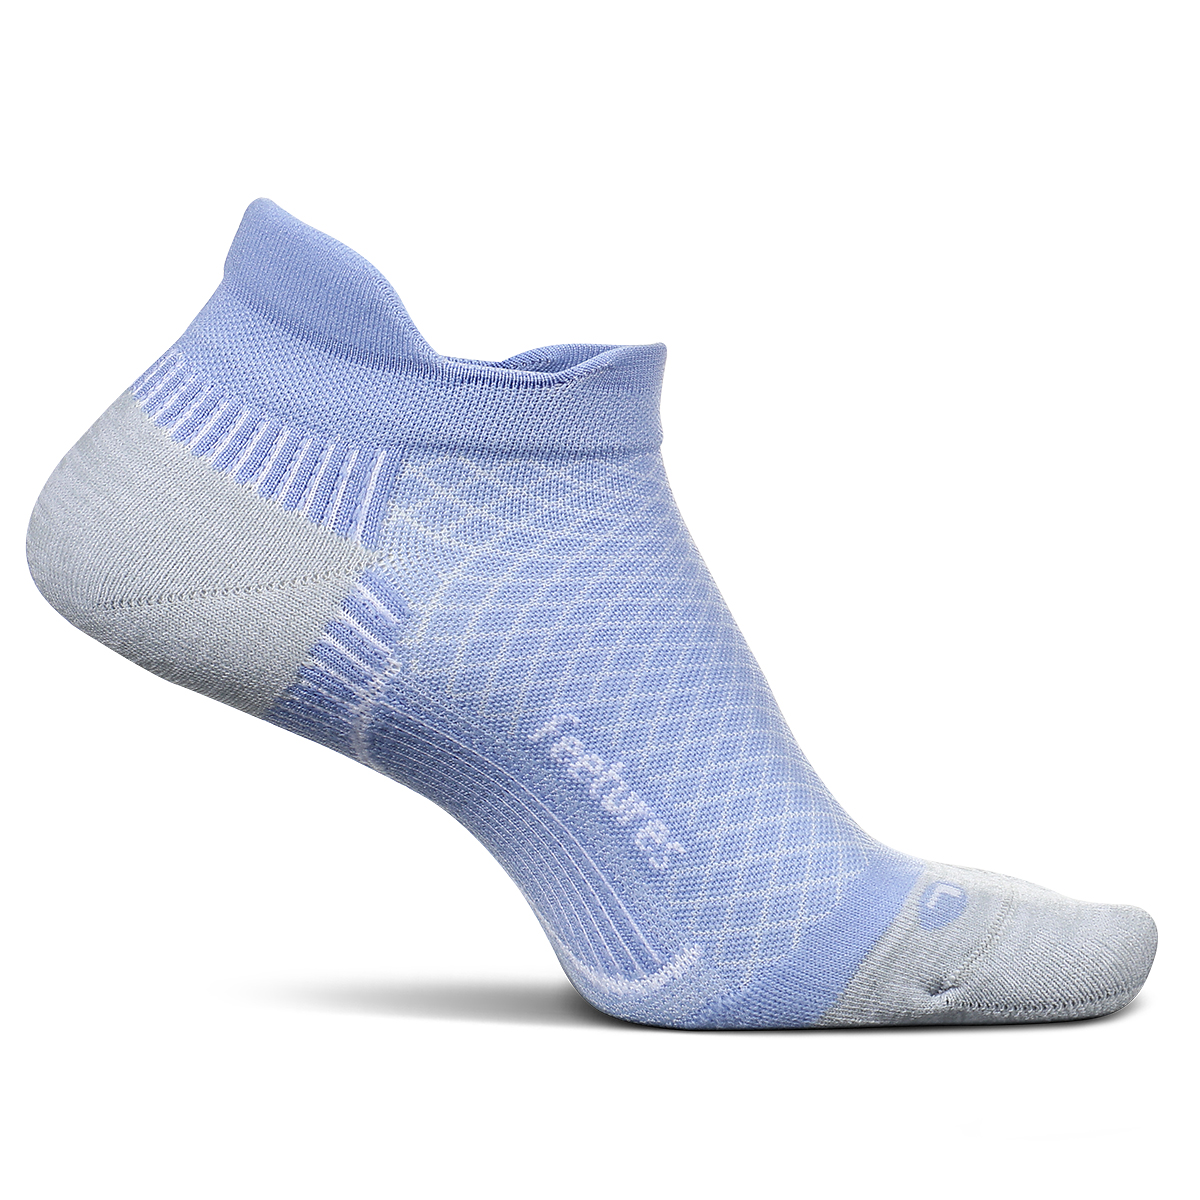 Feetures PF Relief Cushion No Show Tab Socks - Color: Lilatech - Size: S, Lilatech, large, image 1